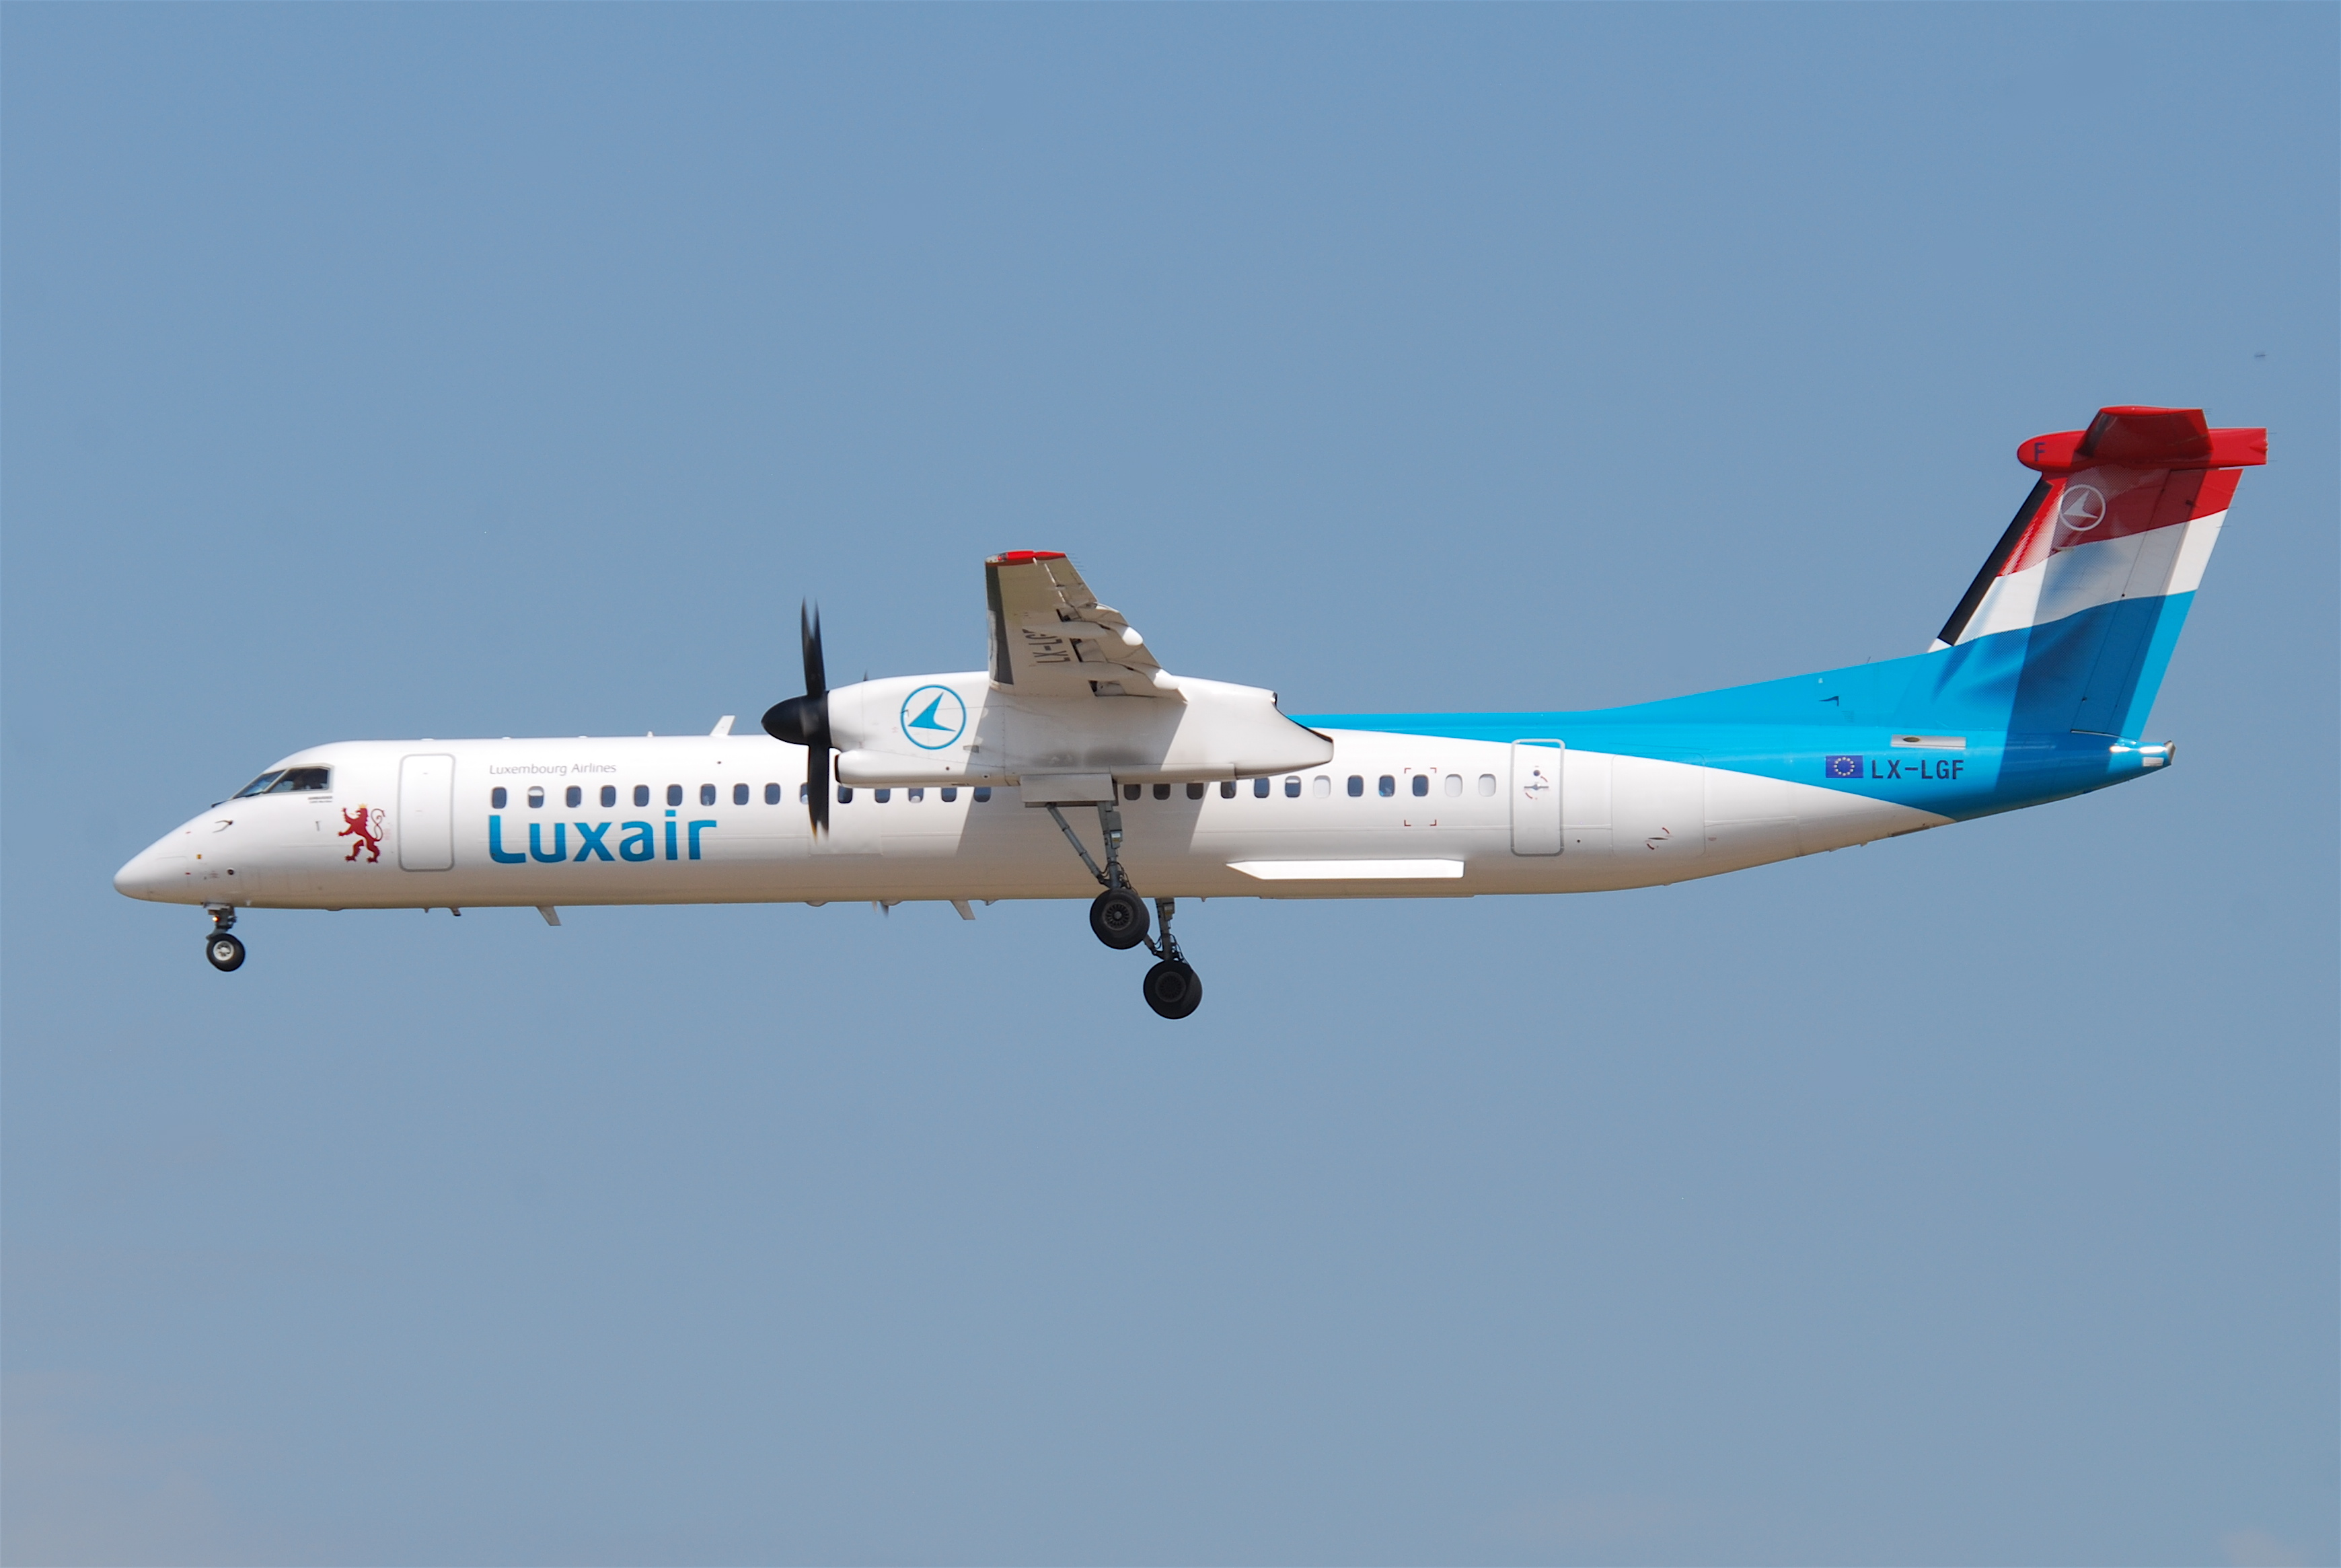 A Q400 turboprop aircraft, for which an MPA conversion is proposed. Image: Aero Icarus from Zürich, Switzerland